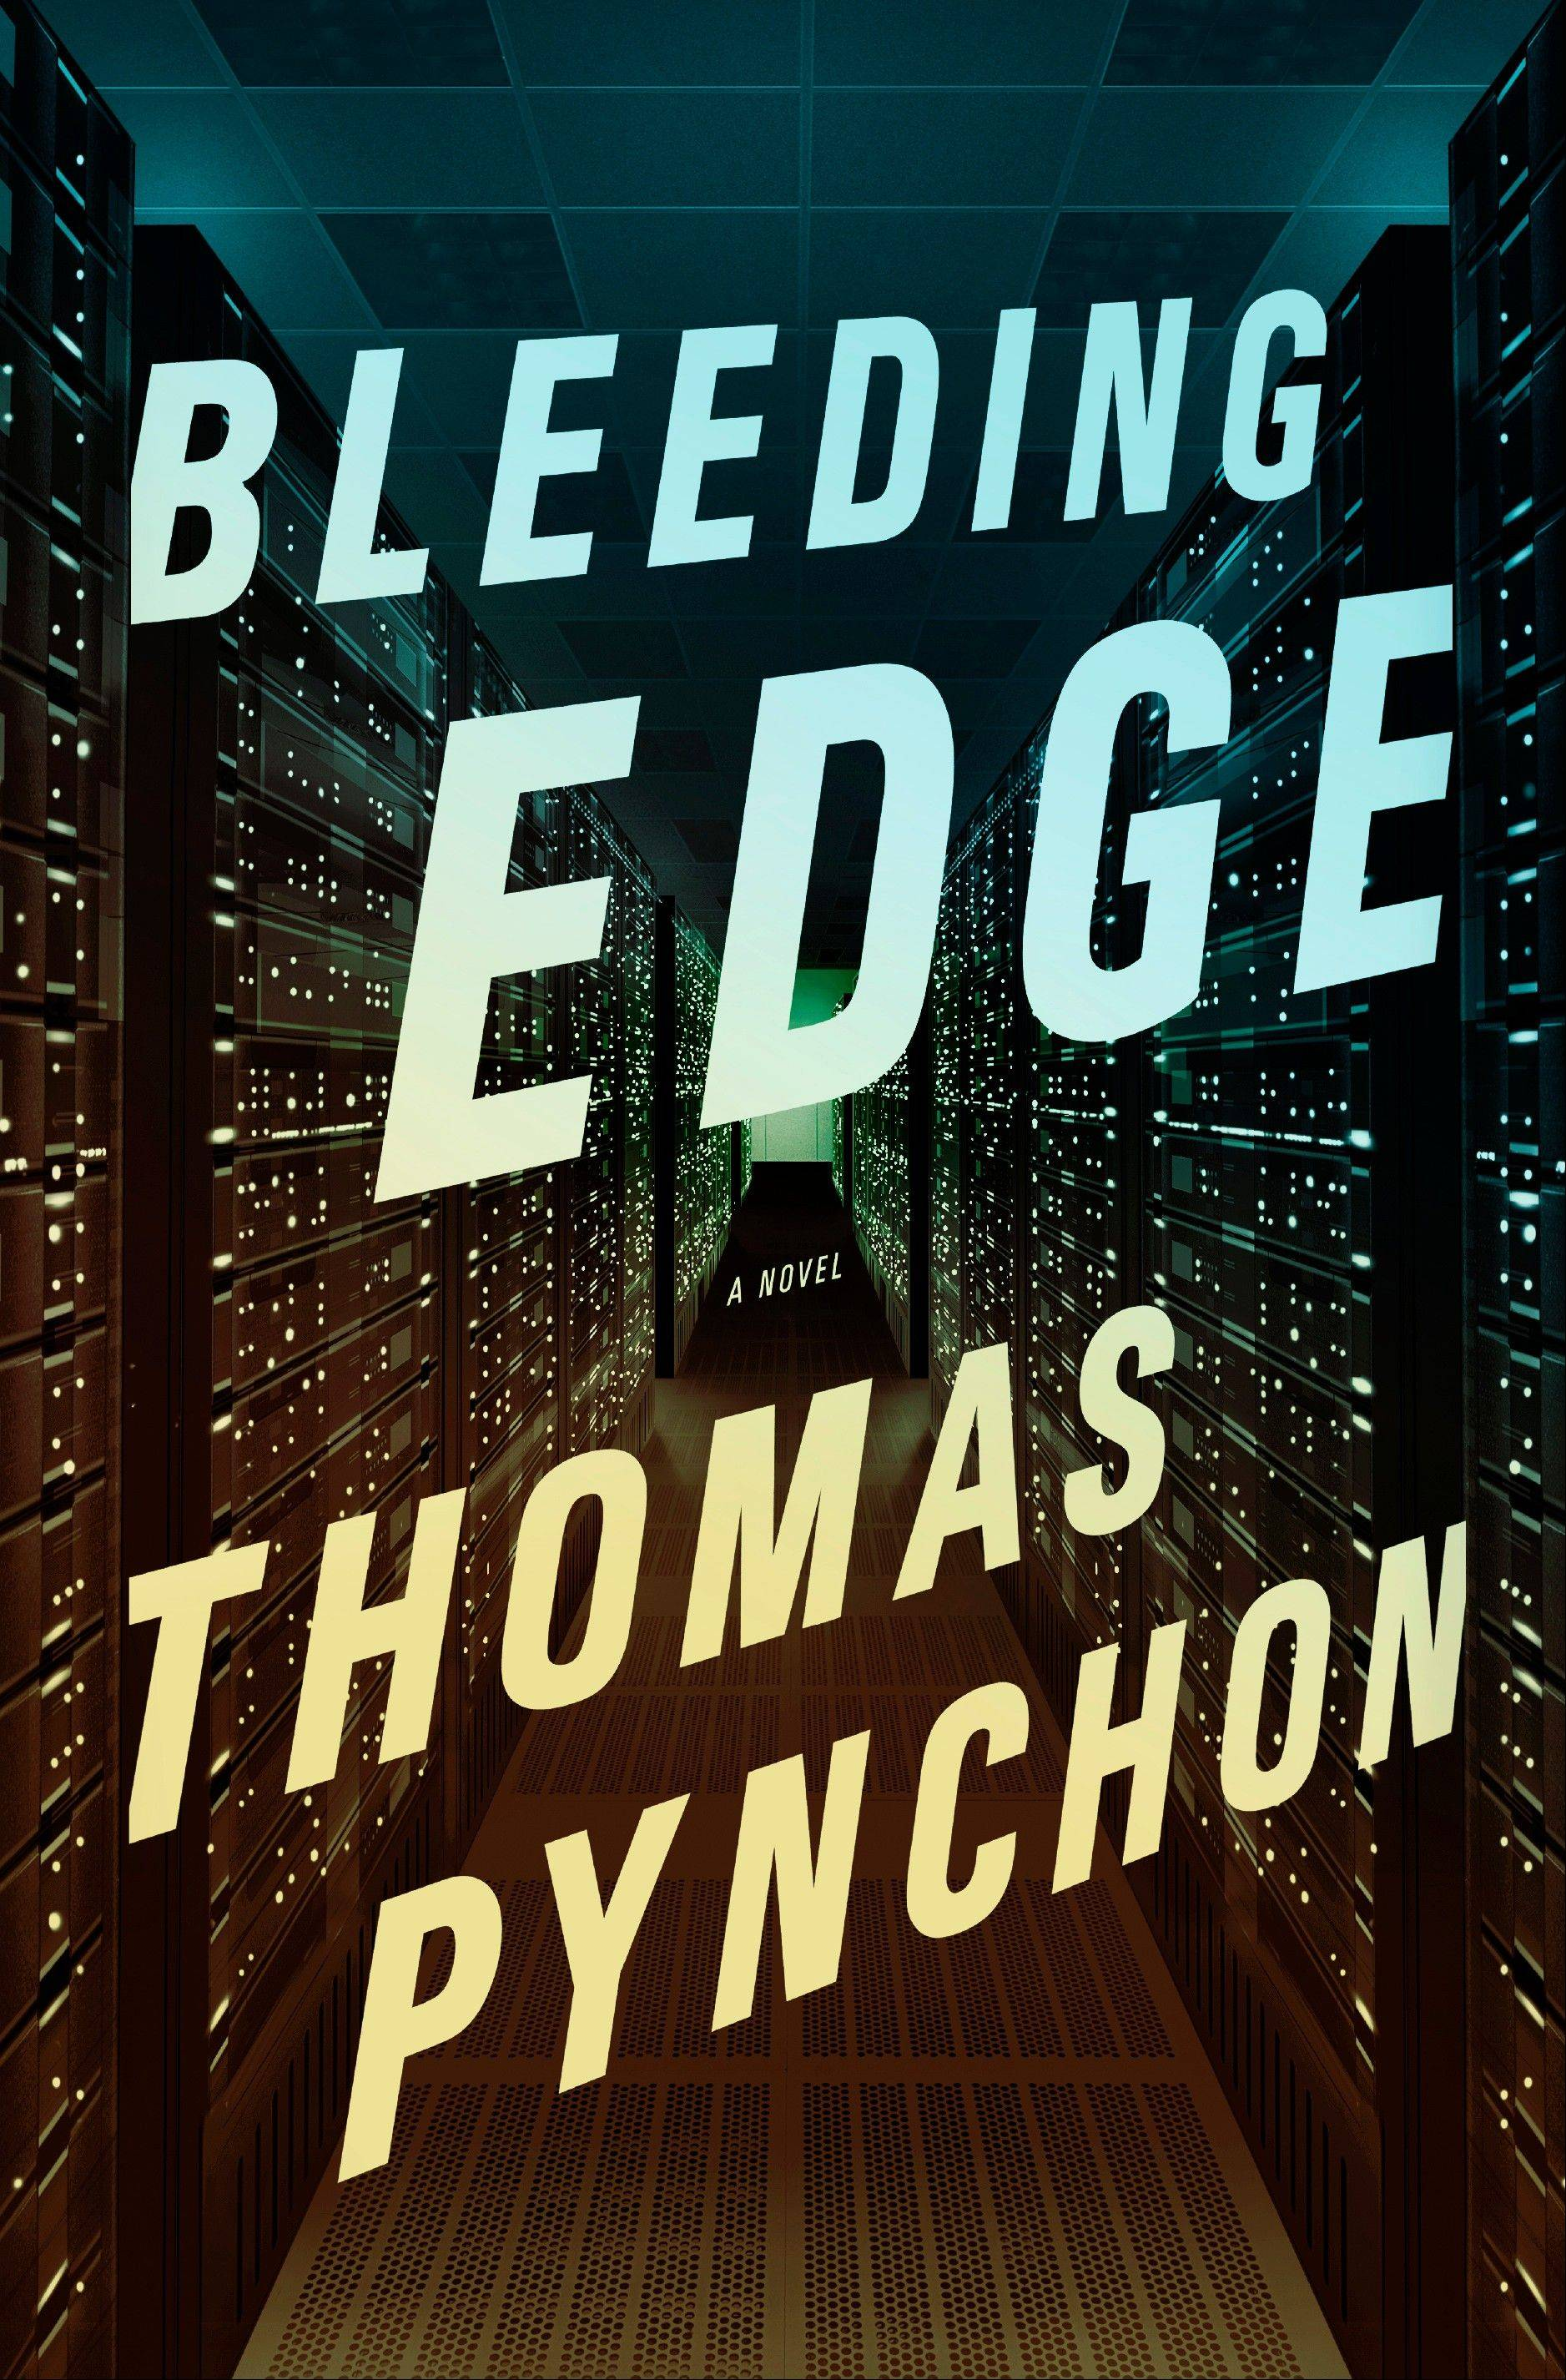 �Bleeding Edge� by Thomas Pynchon